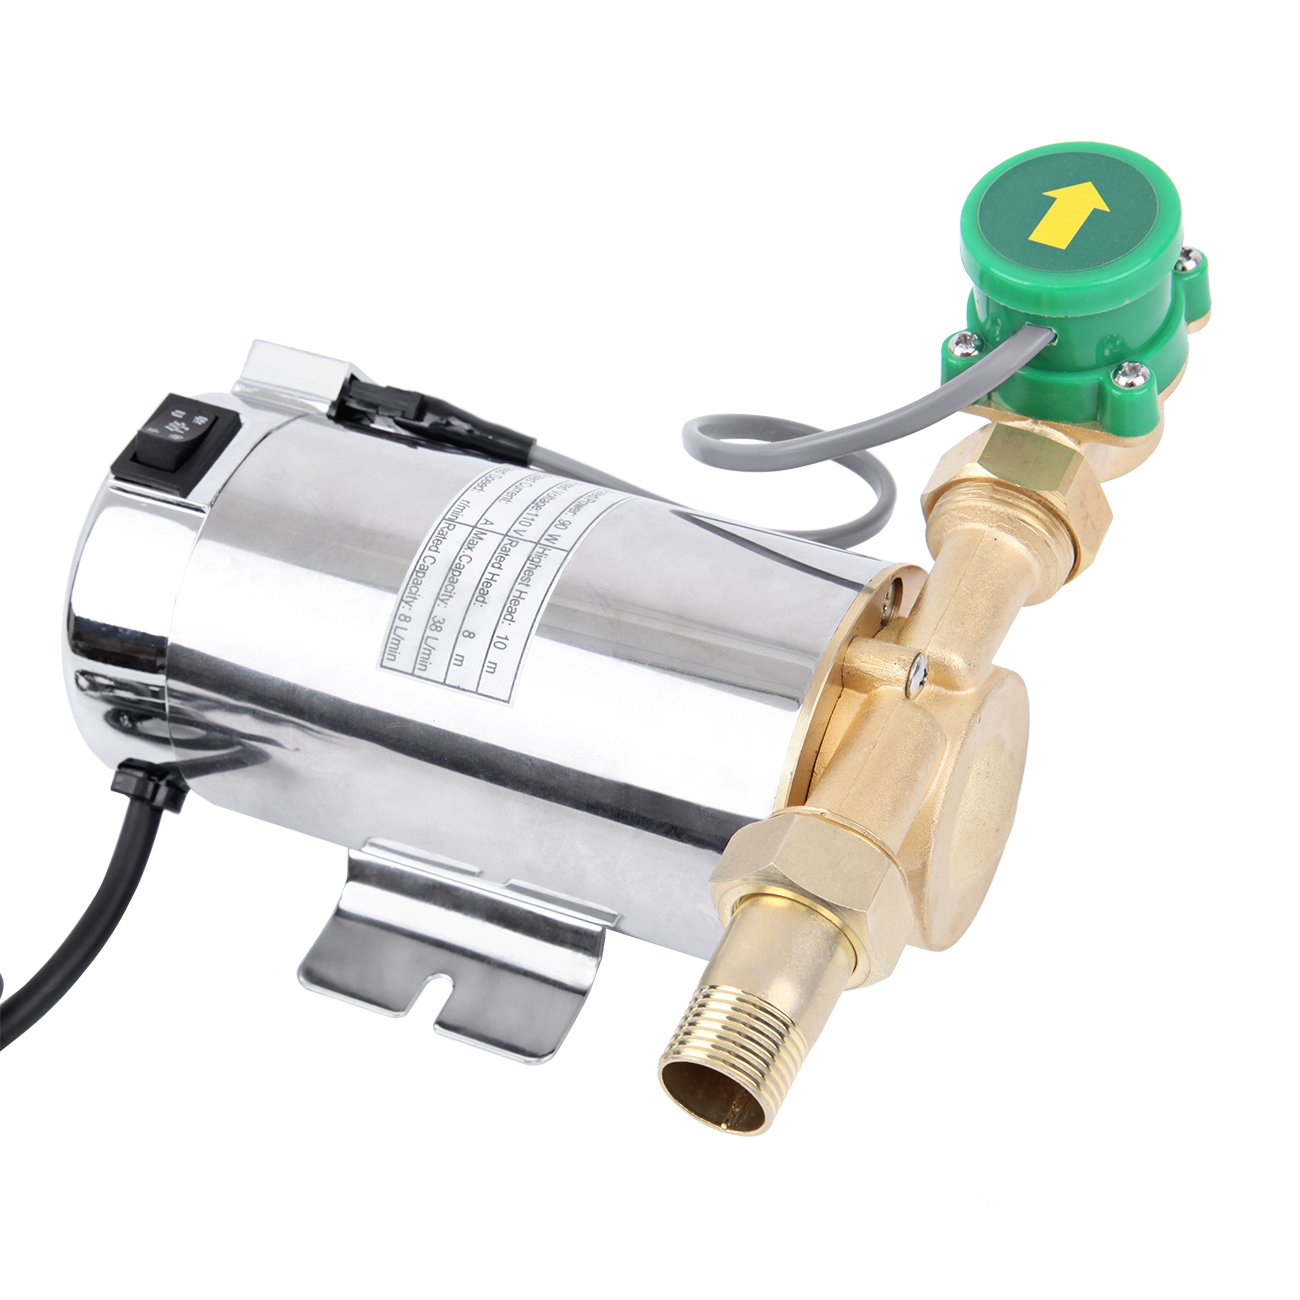 XuanYue Electric Water Pressure Pump 90W Self Priming Water Pump Booster For Home Shower Washing